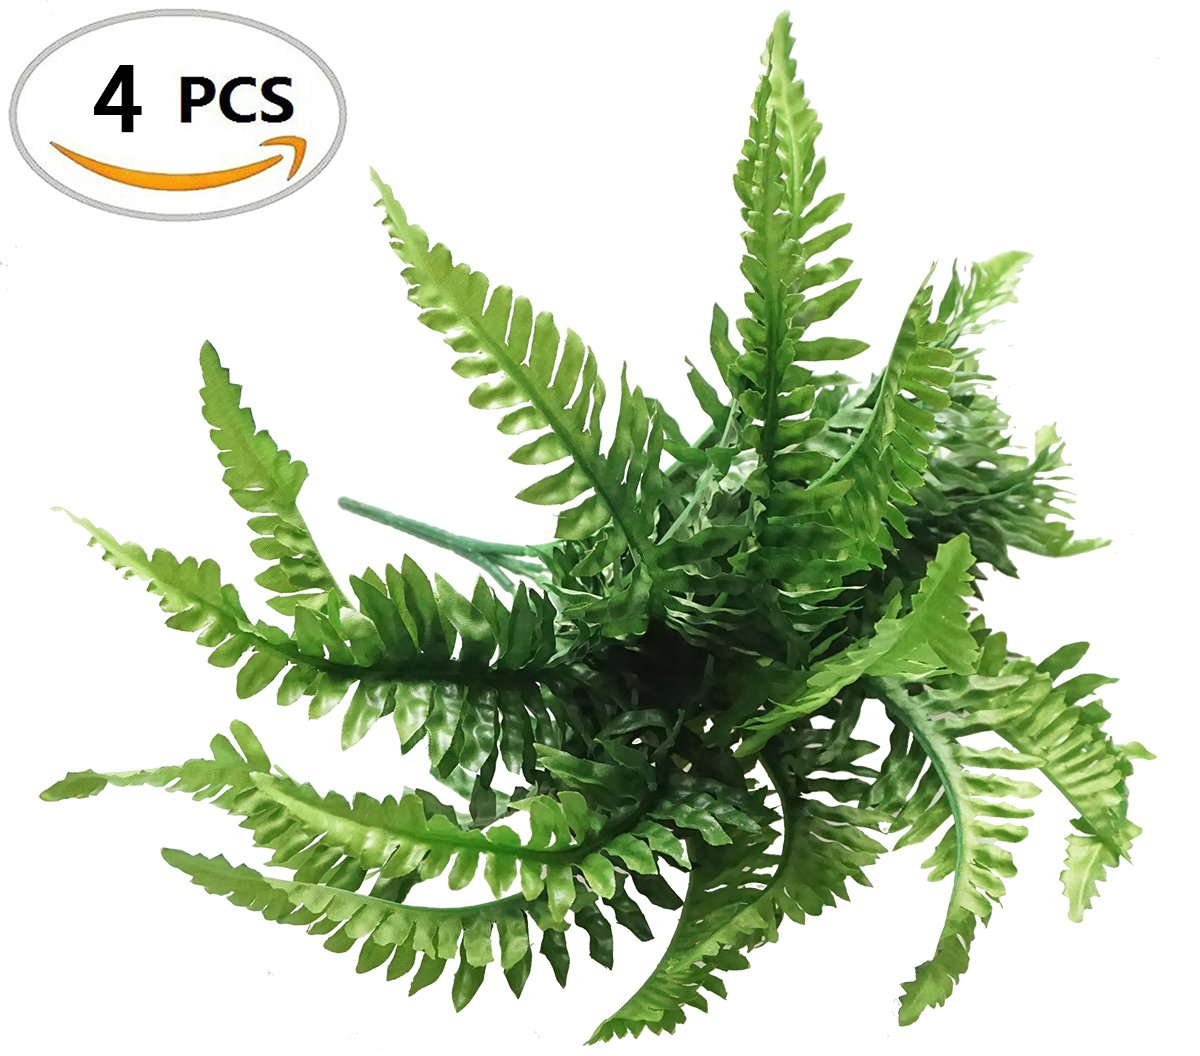 Fake-Faux-Artificial-Boston-Ferns-Plants-Greenery-Bushes-for-Indoor-Outside-Home-Garden-Party-Decor-4-Bunches-24-Leaves-Per-Bunch